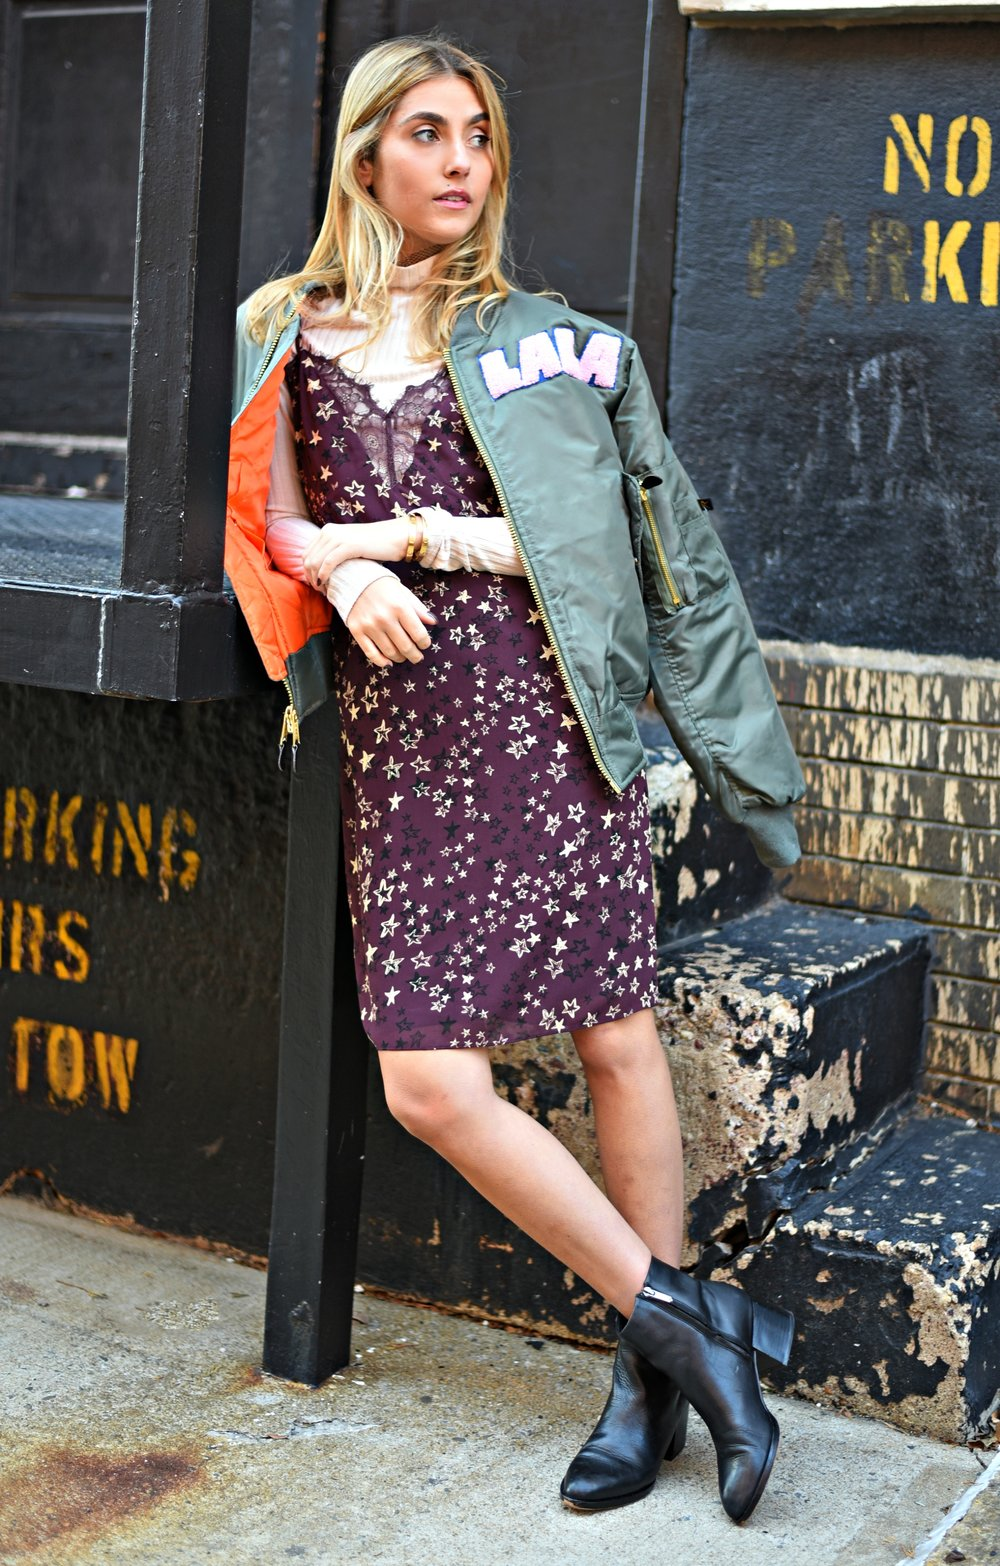 CHARLOTTE BICKLEY YIN 2MY YANG SISTER FASHION BLOGGERS NYC UNEMPLOYED DENIM PERSONALIZED BOMBER JACKET POST 12.jpg